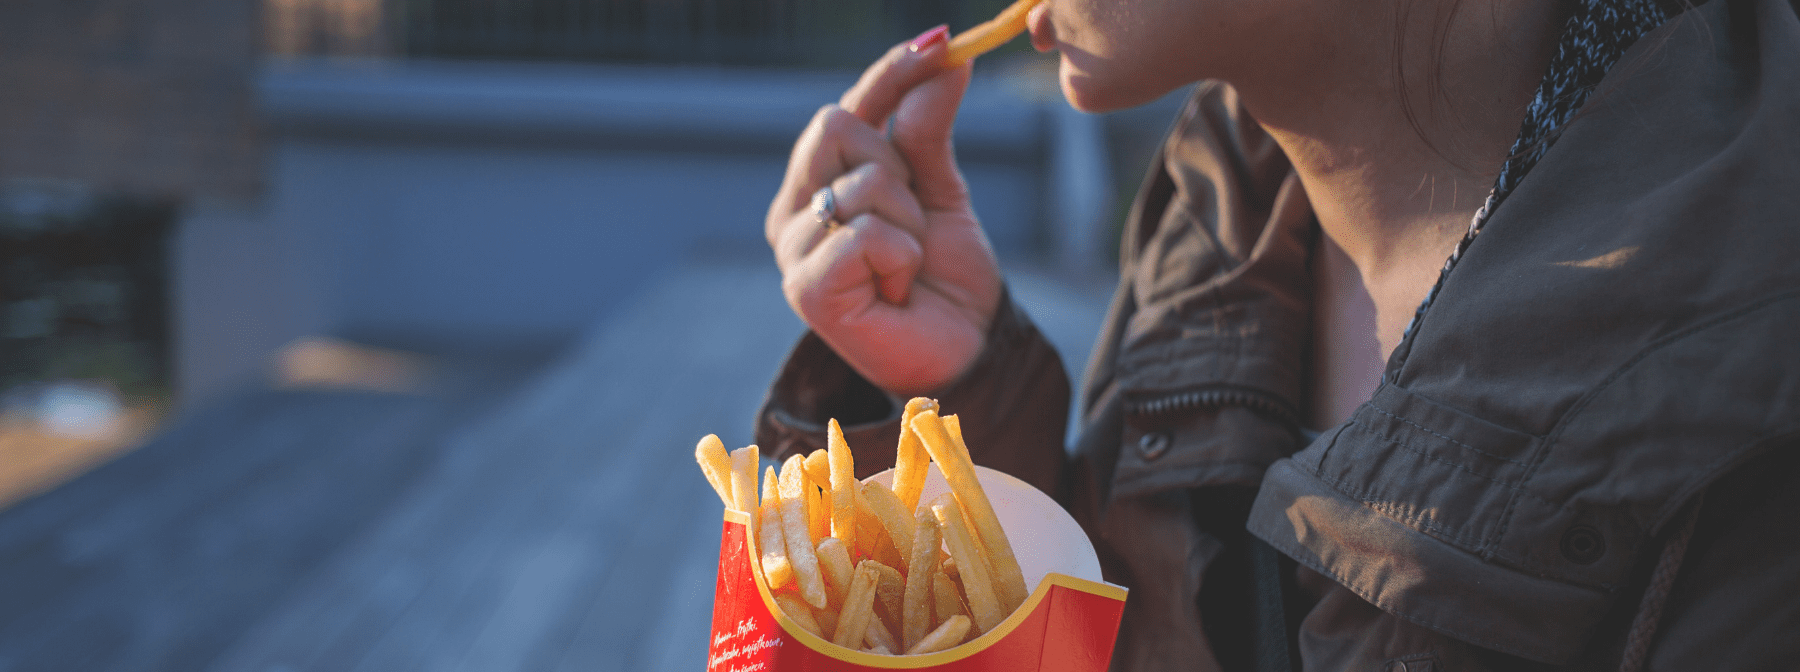 bad habits that stop you losing weight - fast food